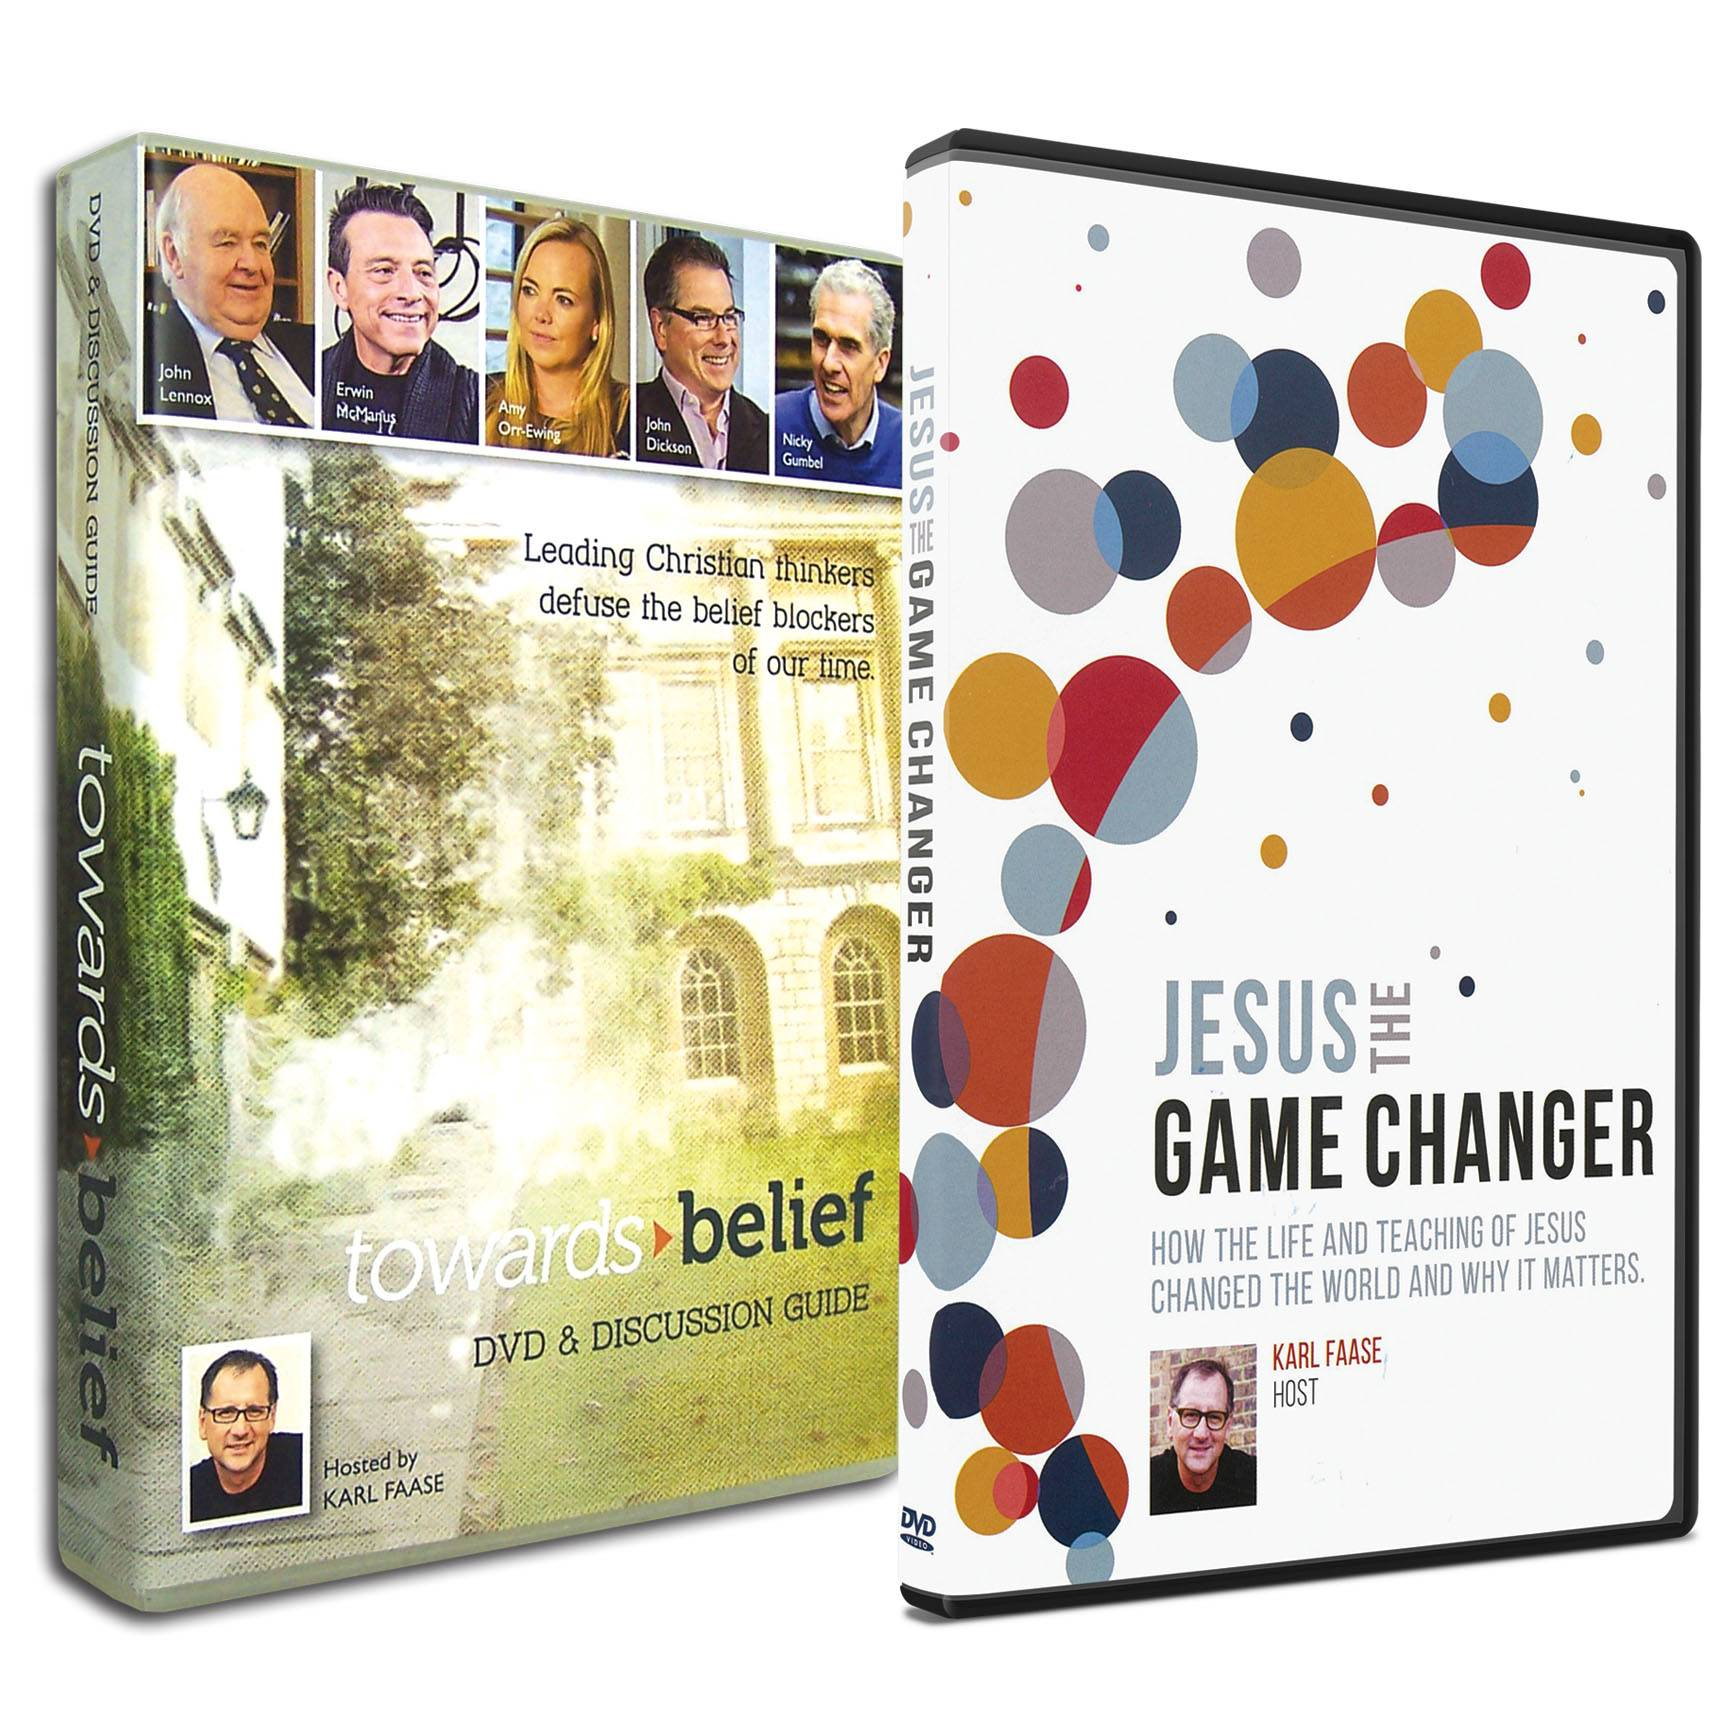 jesus-the-game-changer-towards-belief-hosted-by-karl-fasse-dvd-pack.jpg